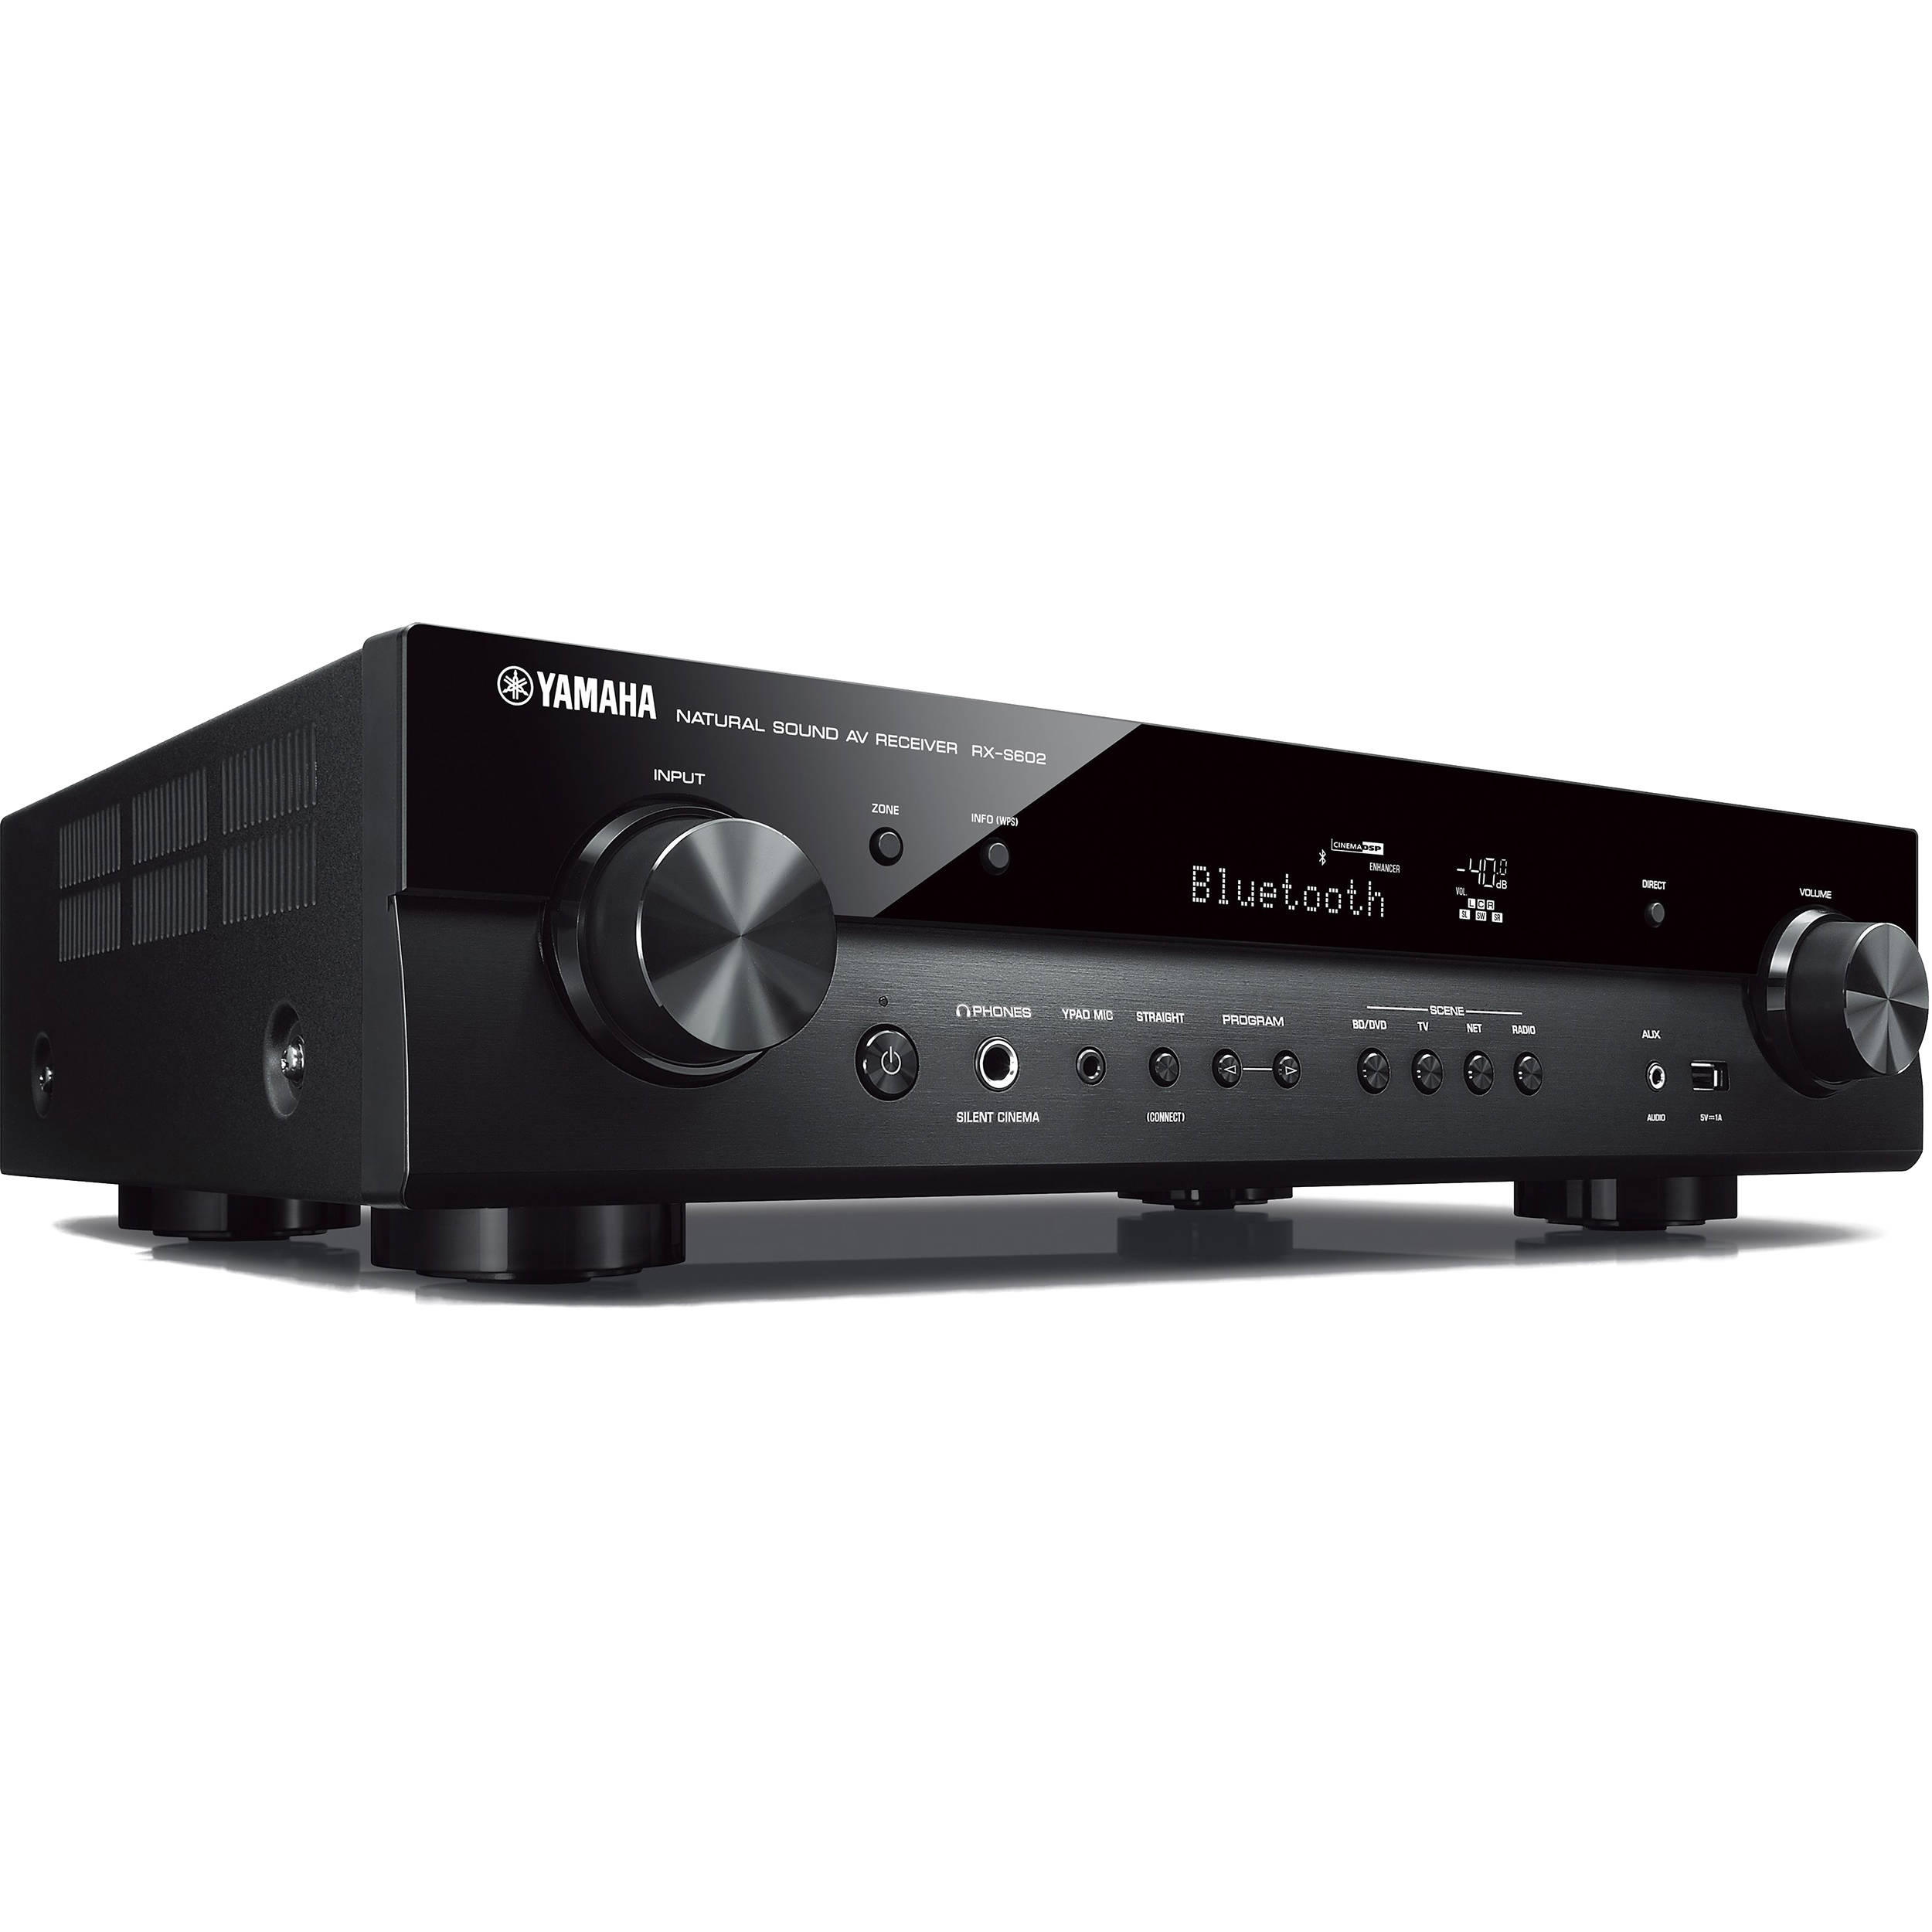 Yamaha RX-S602 5 1-Channel MusicCast Network A/V Receiver